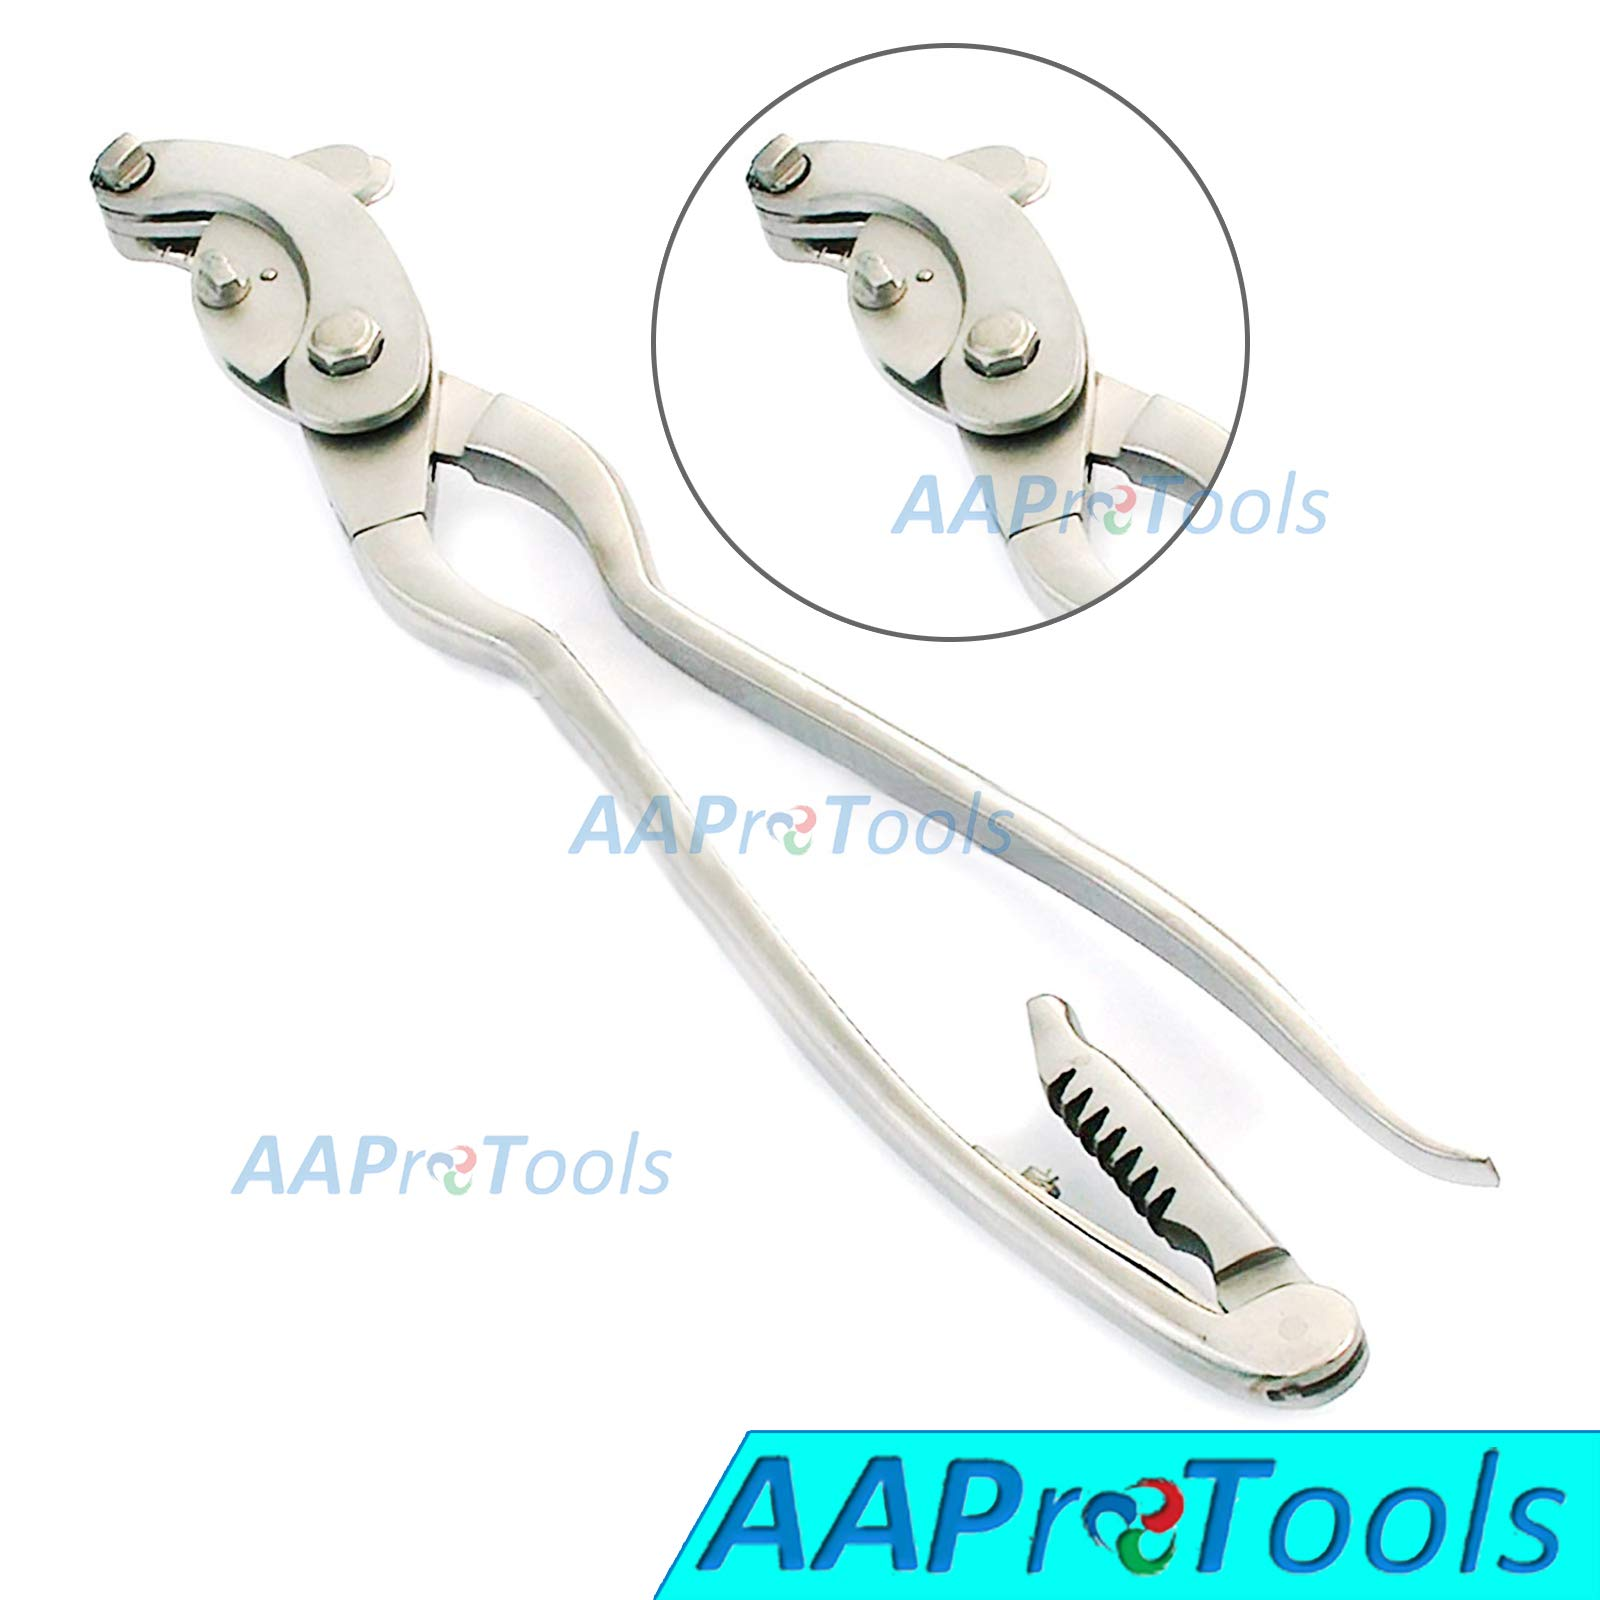 AAProTools Serra Emasculator Bent Handle with Ratchet Triple Crush 14'' Stainless Steel Veterinary